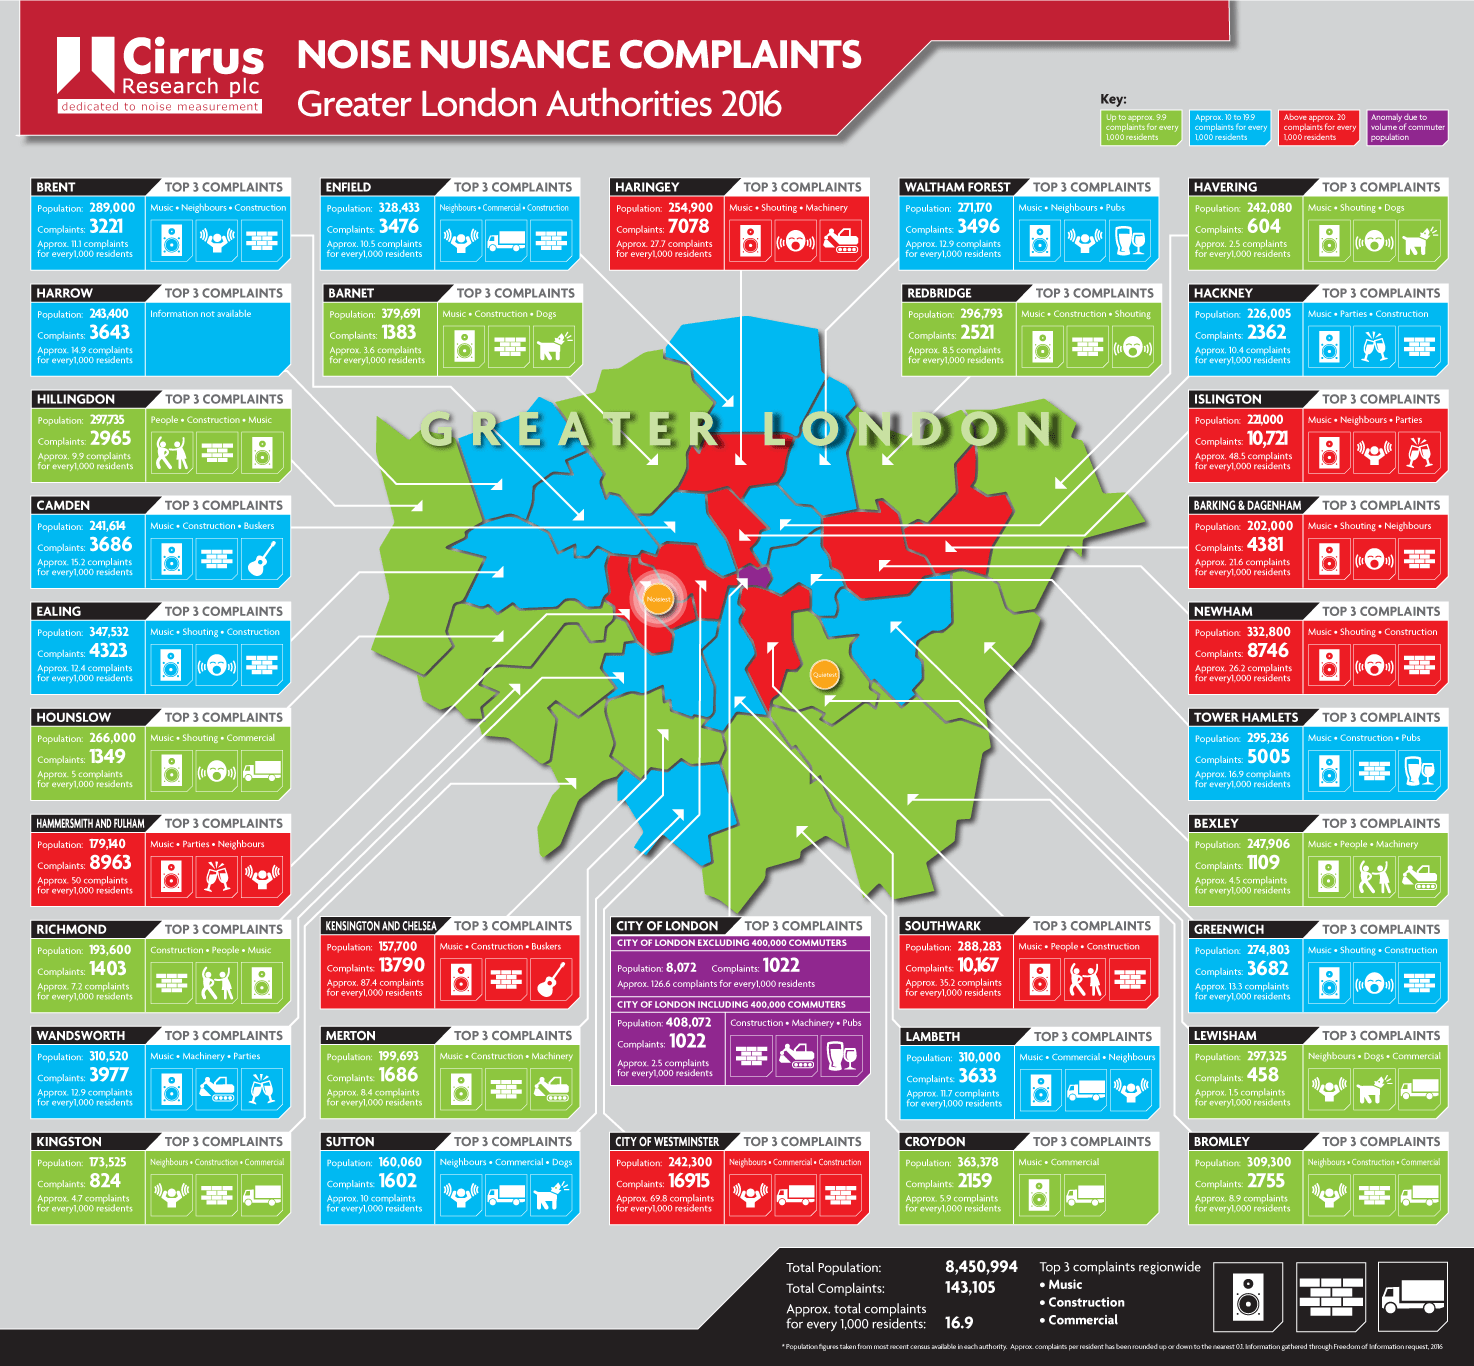 Infographic showing a map of London's noise nuisance complaints